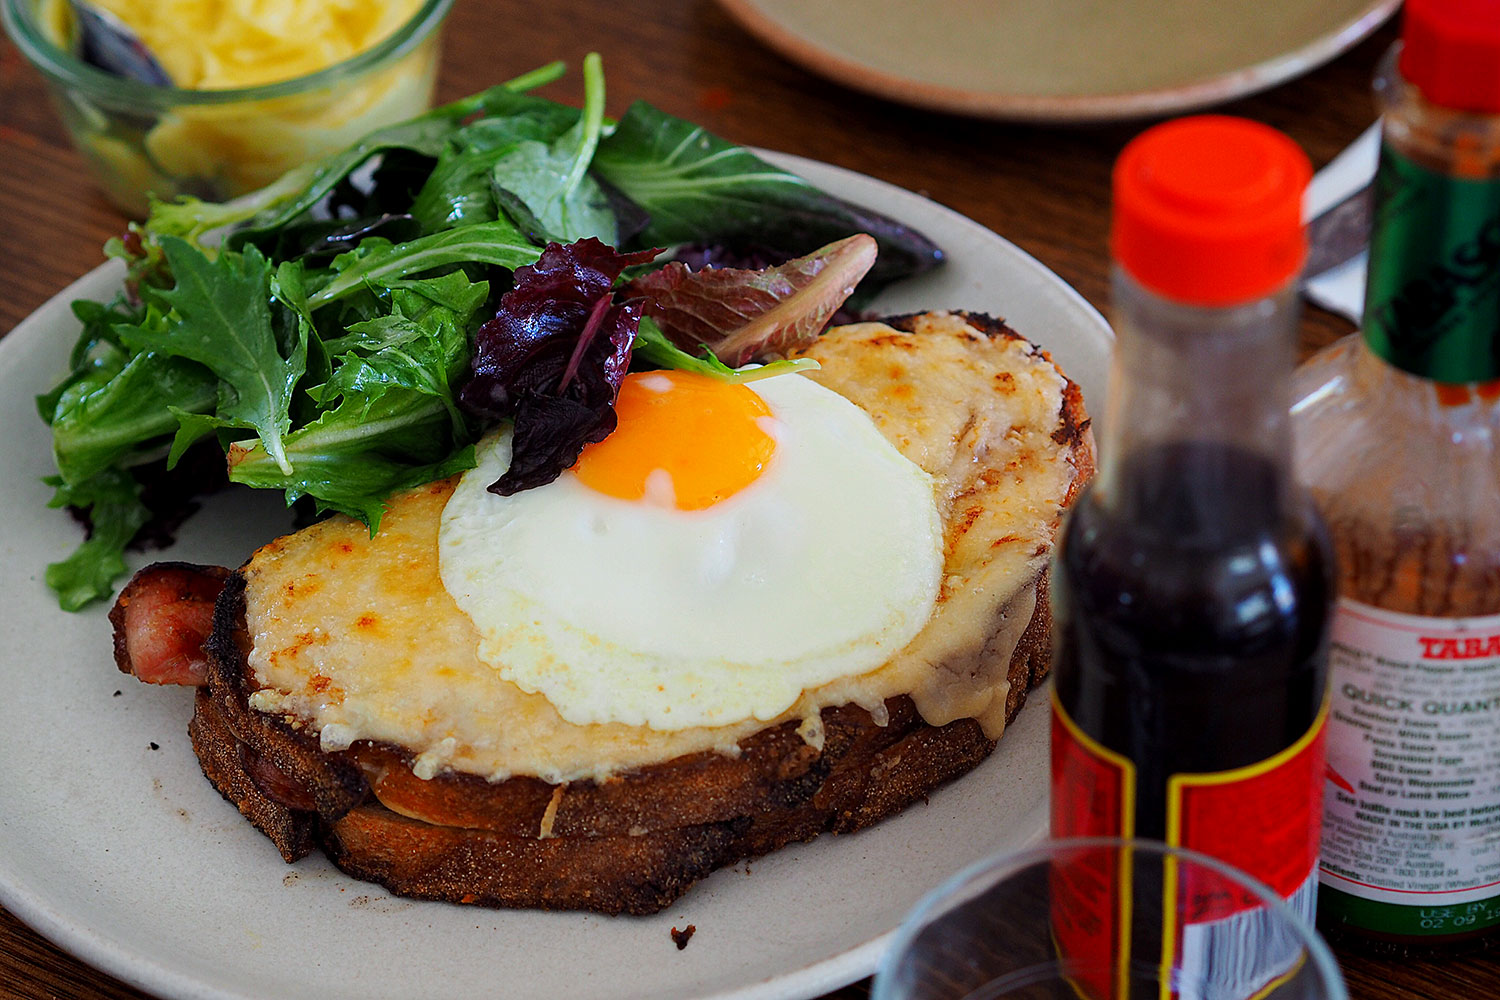 Sydney Food Blog Review of Le Grande Bouffe, Rozelle: Croque Madam, $17